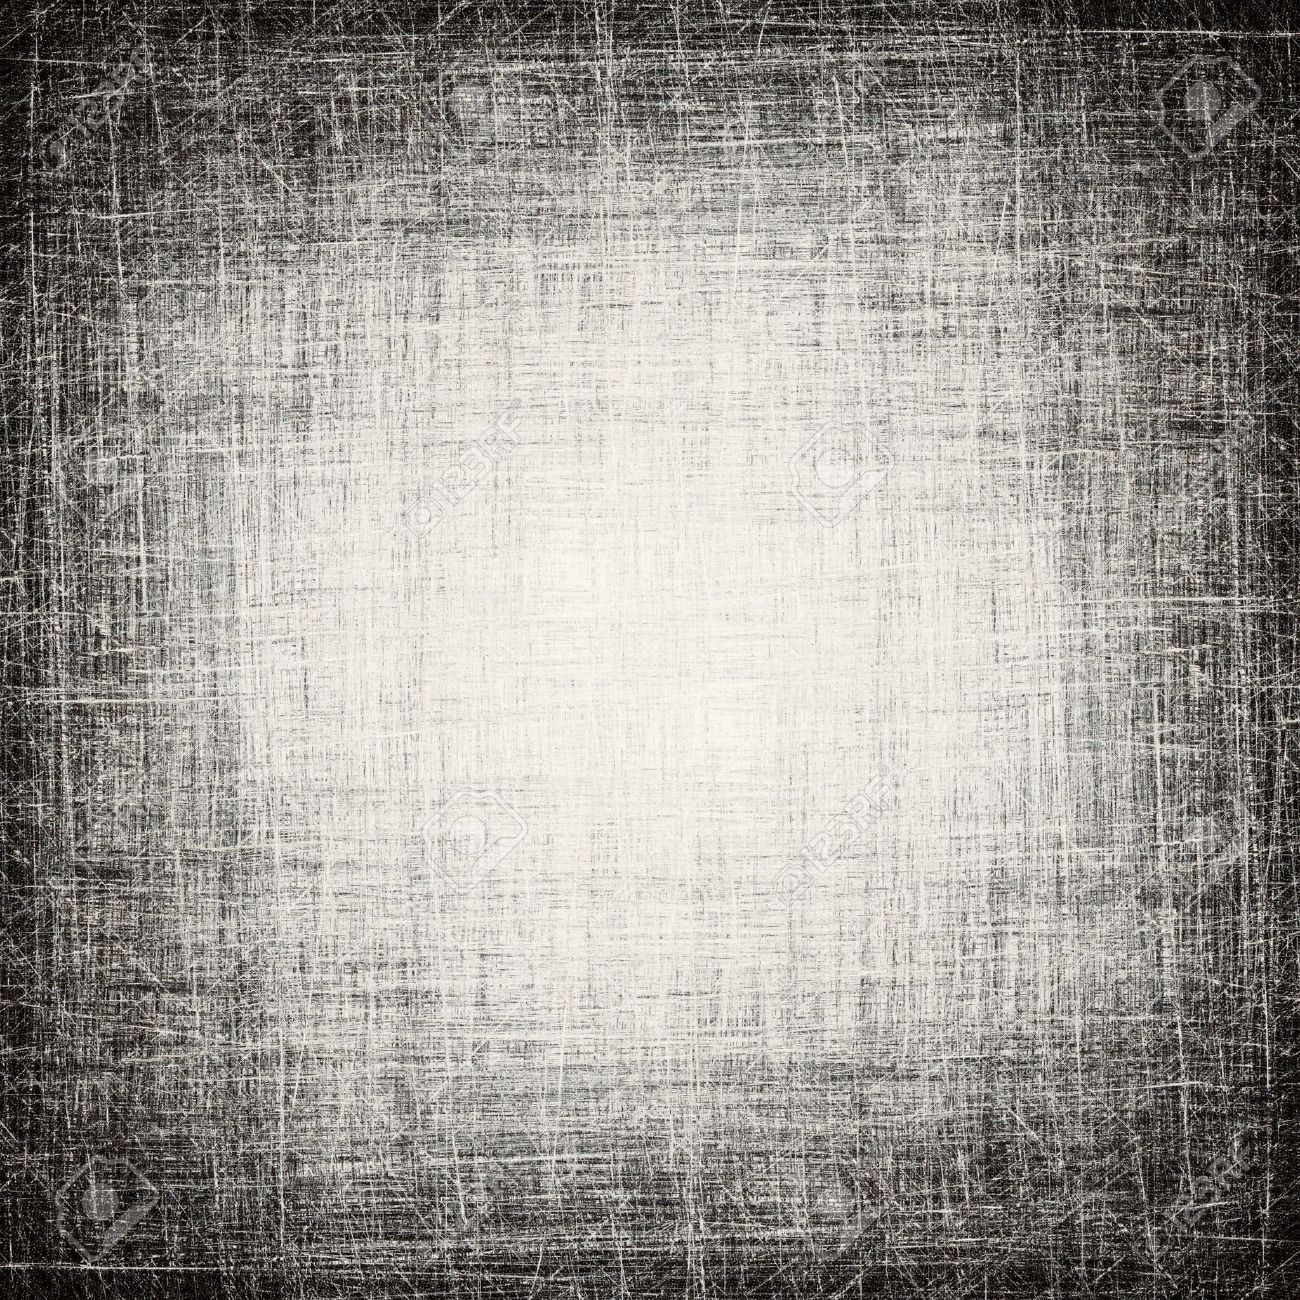 scratched grunge paper texture, background Stock Photo - 8577867